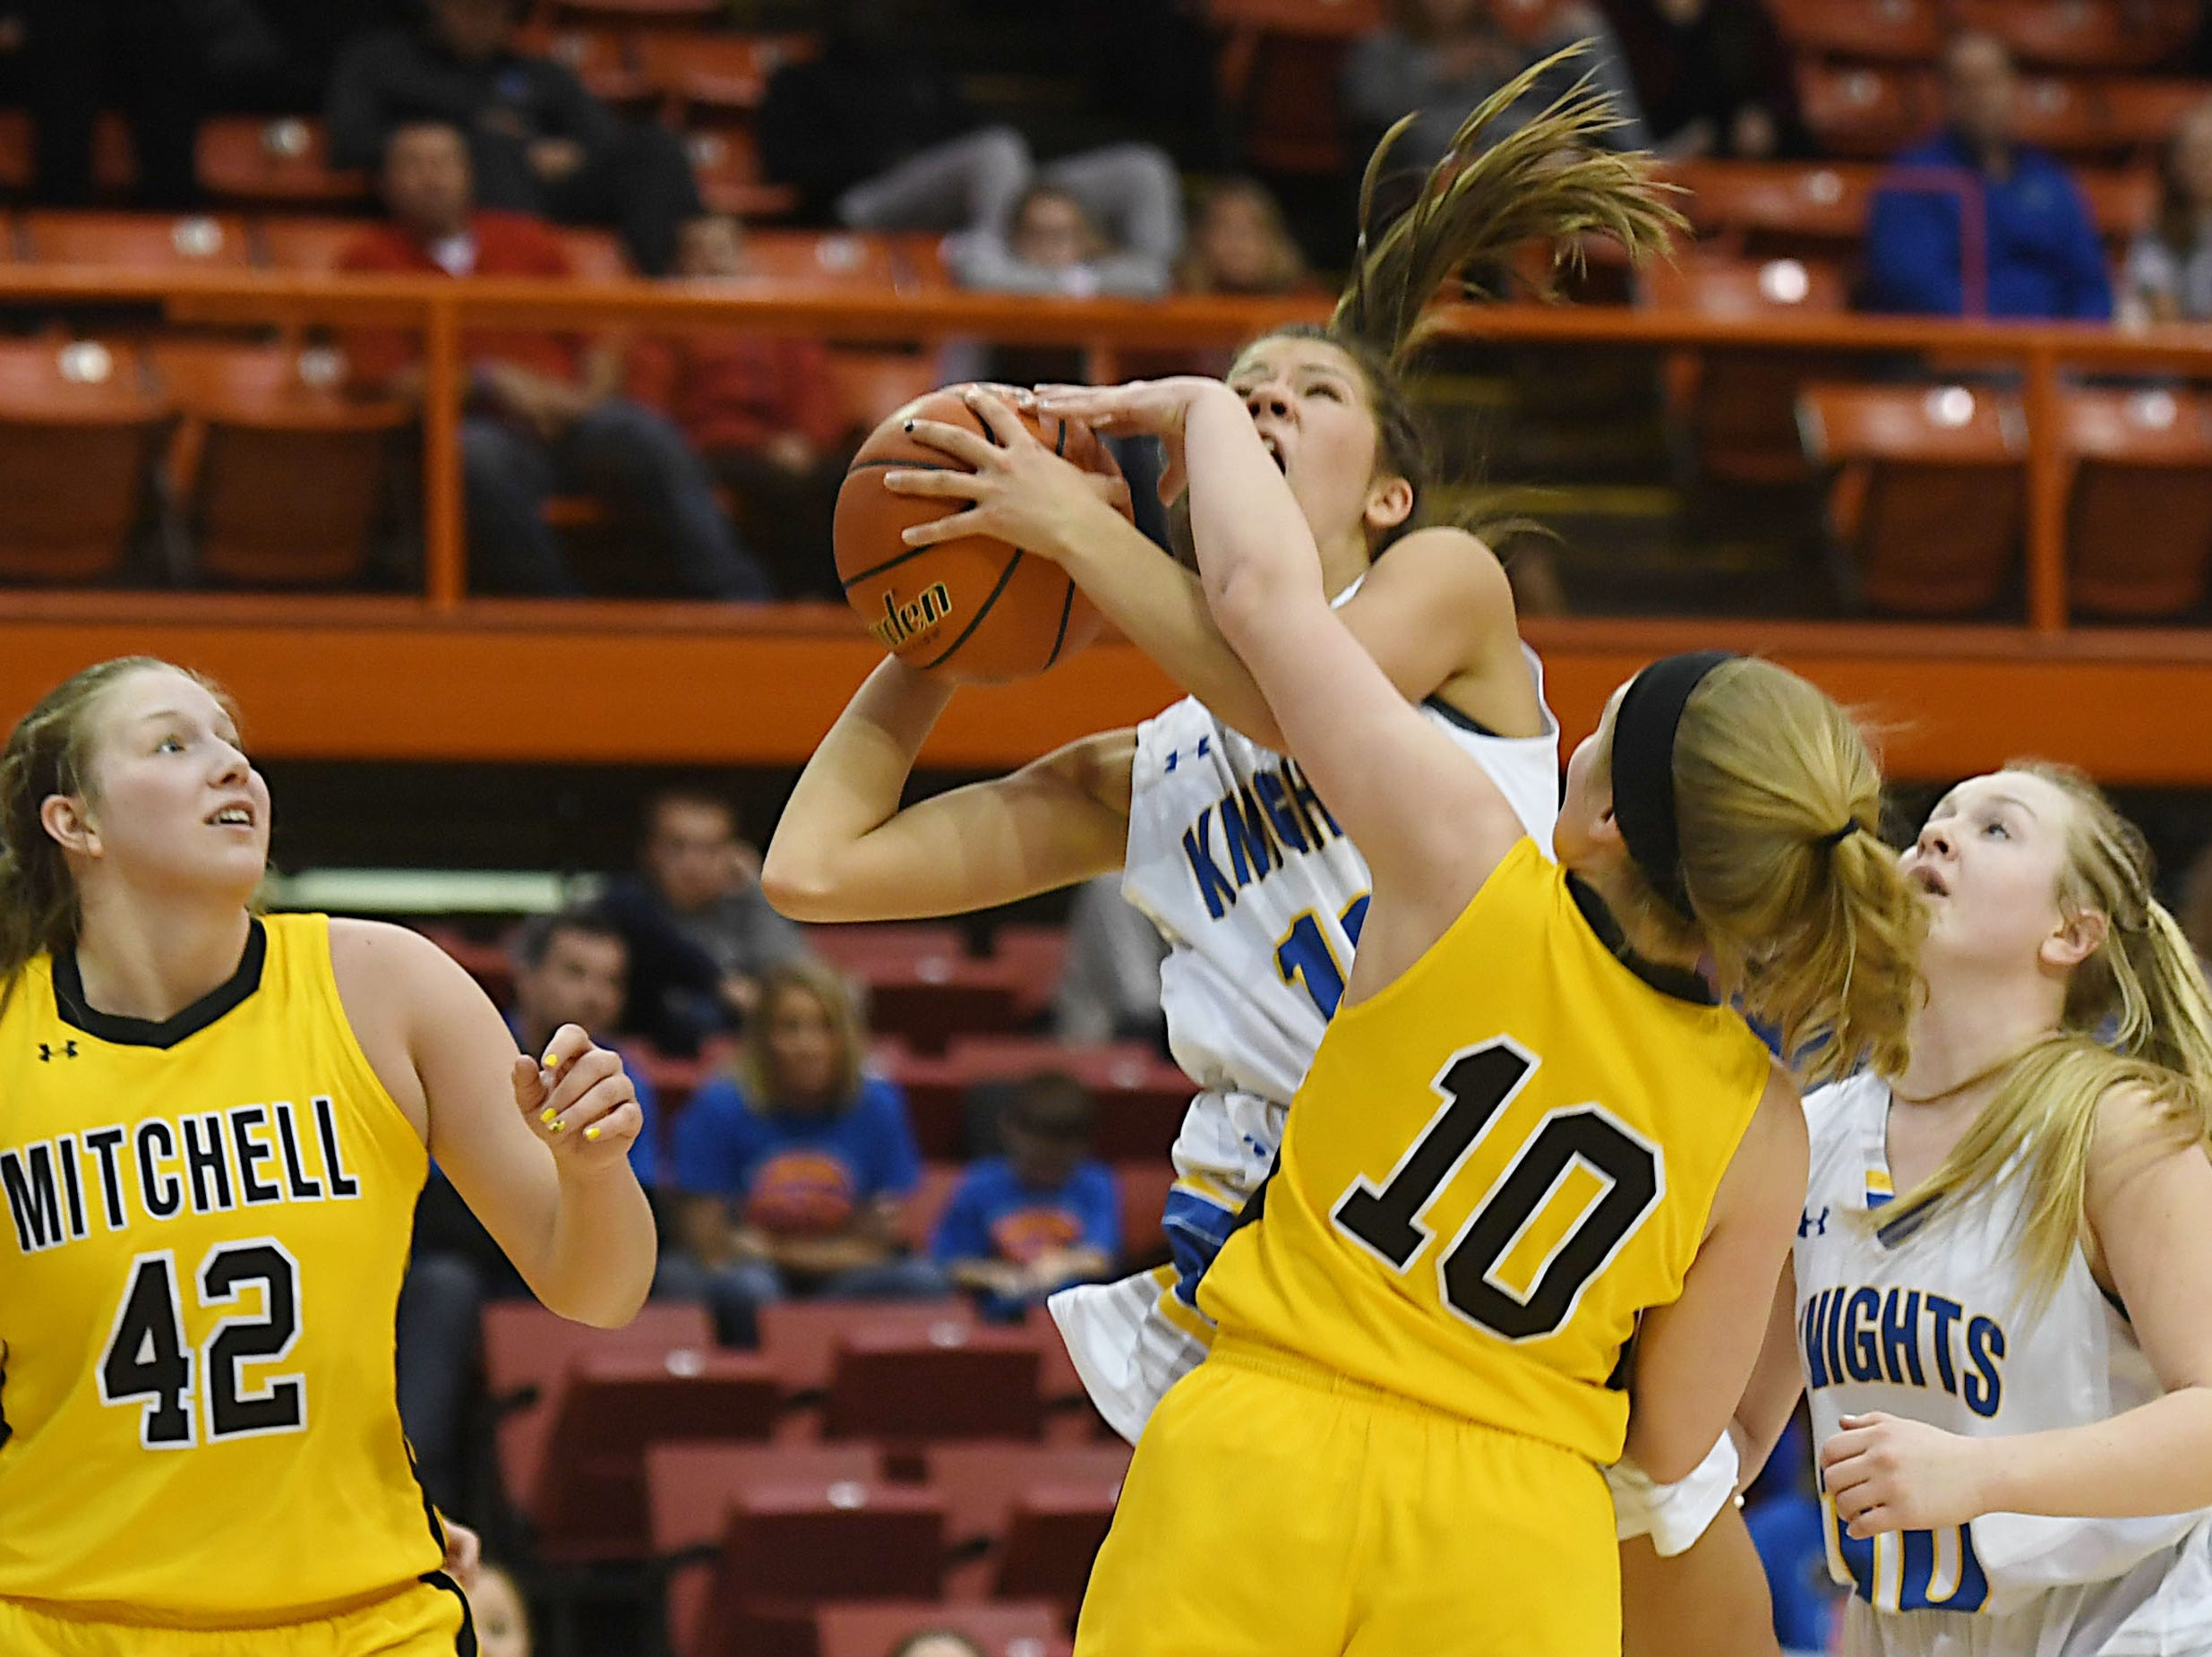 O'Gorman's Isabelle Moore goes against Mitchell defense in the Class AA quarterfinals Thursday, March 14, in Rapid City.